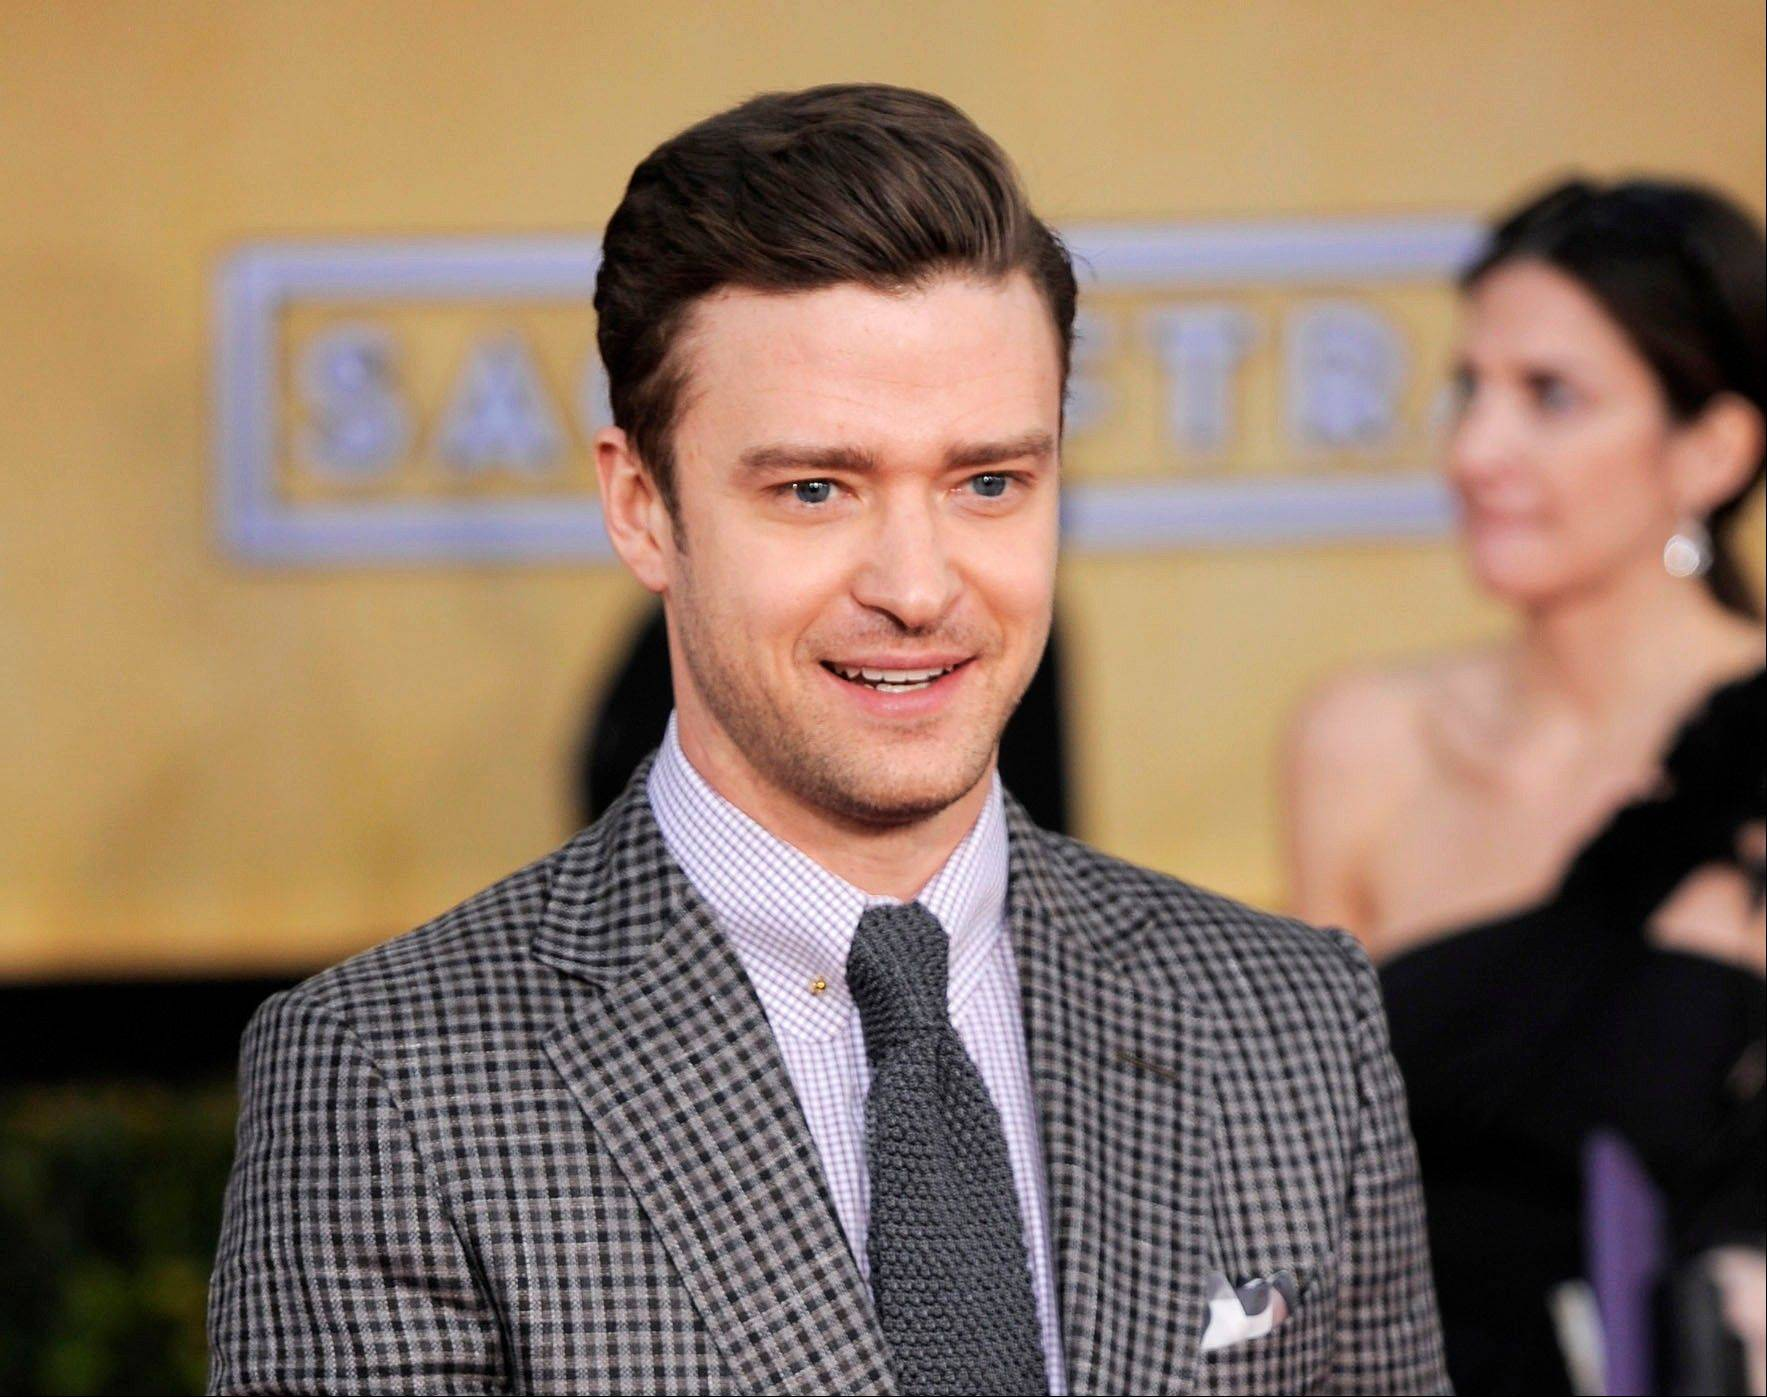 Actor-singer Justin Timberlake will perform at the Grammy Awards show on Feb. 10.